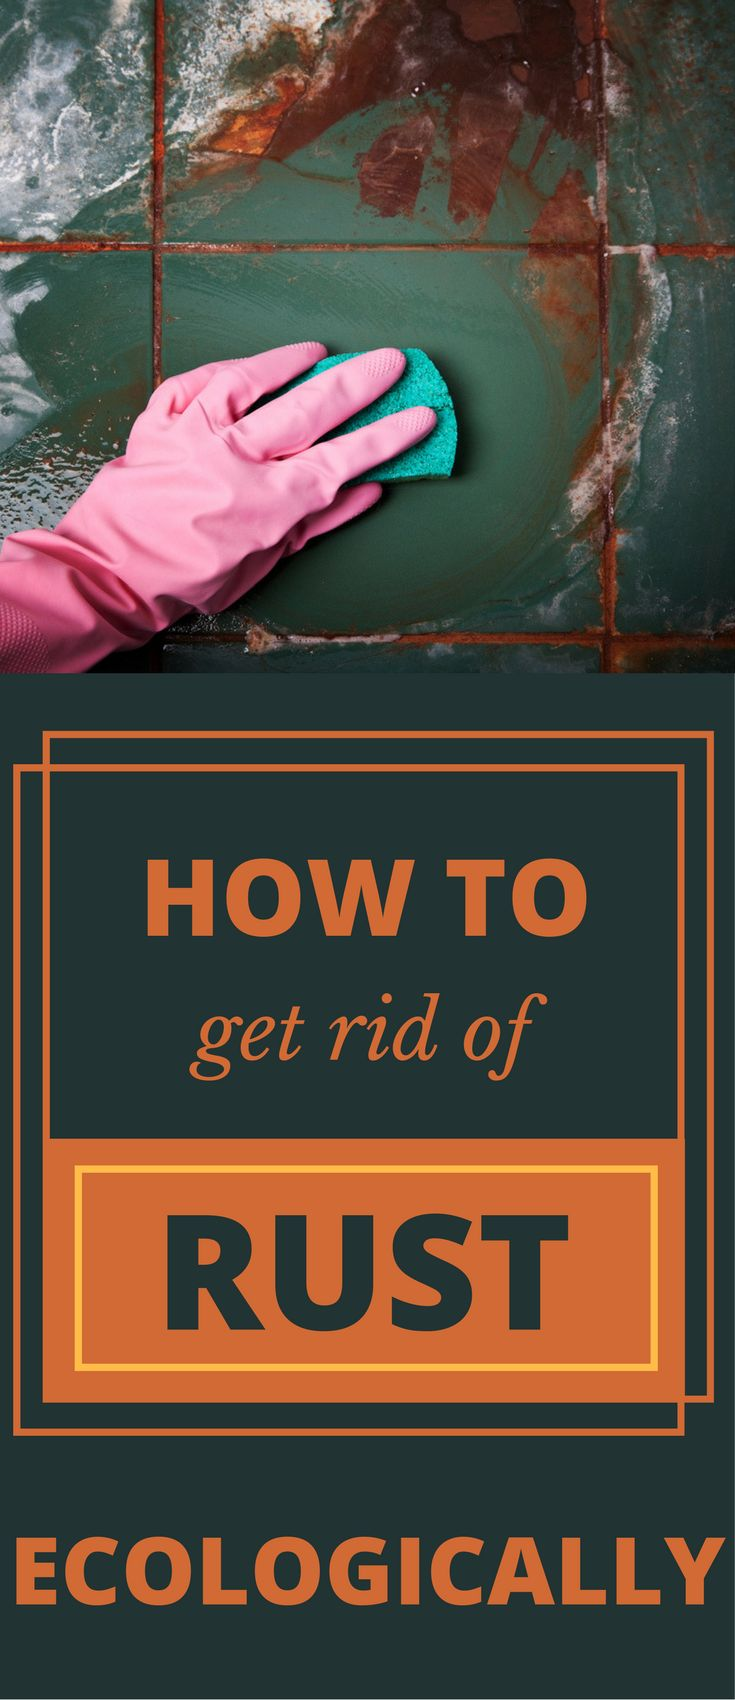 1000 best cleaning tips 101 images on pinterest how to get rid cleaning hacks and pest control. Black Bedroom Furniture Sets. Home Design Ideas